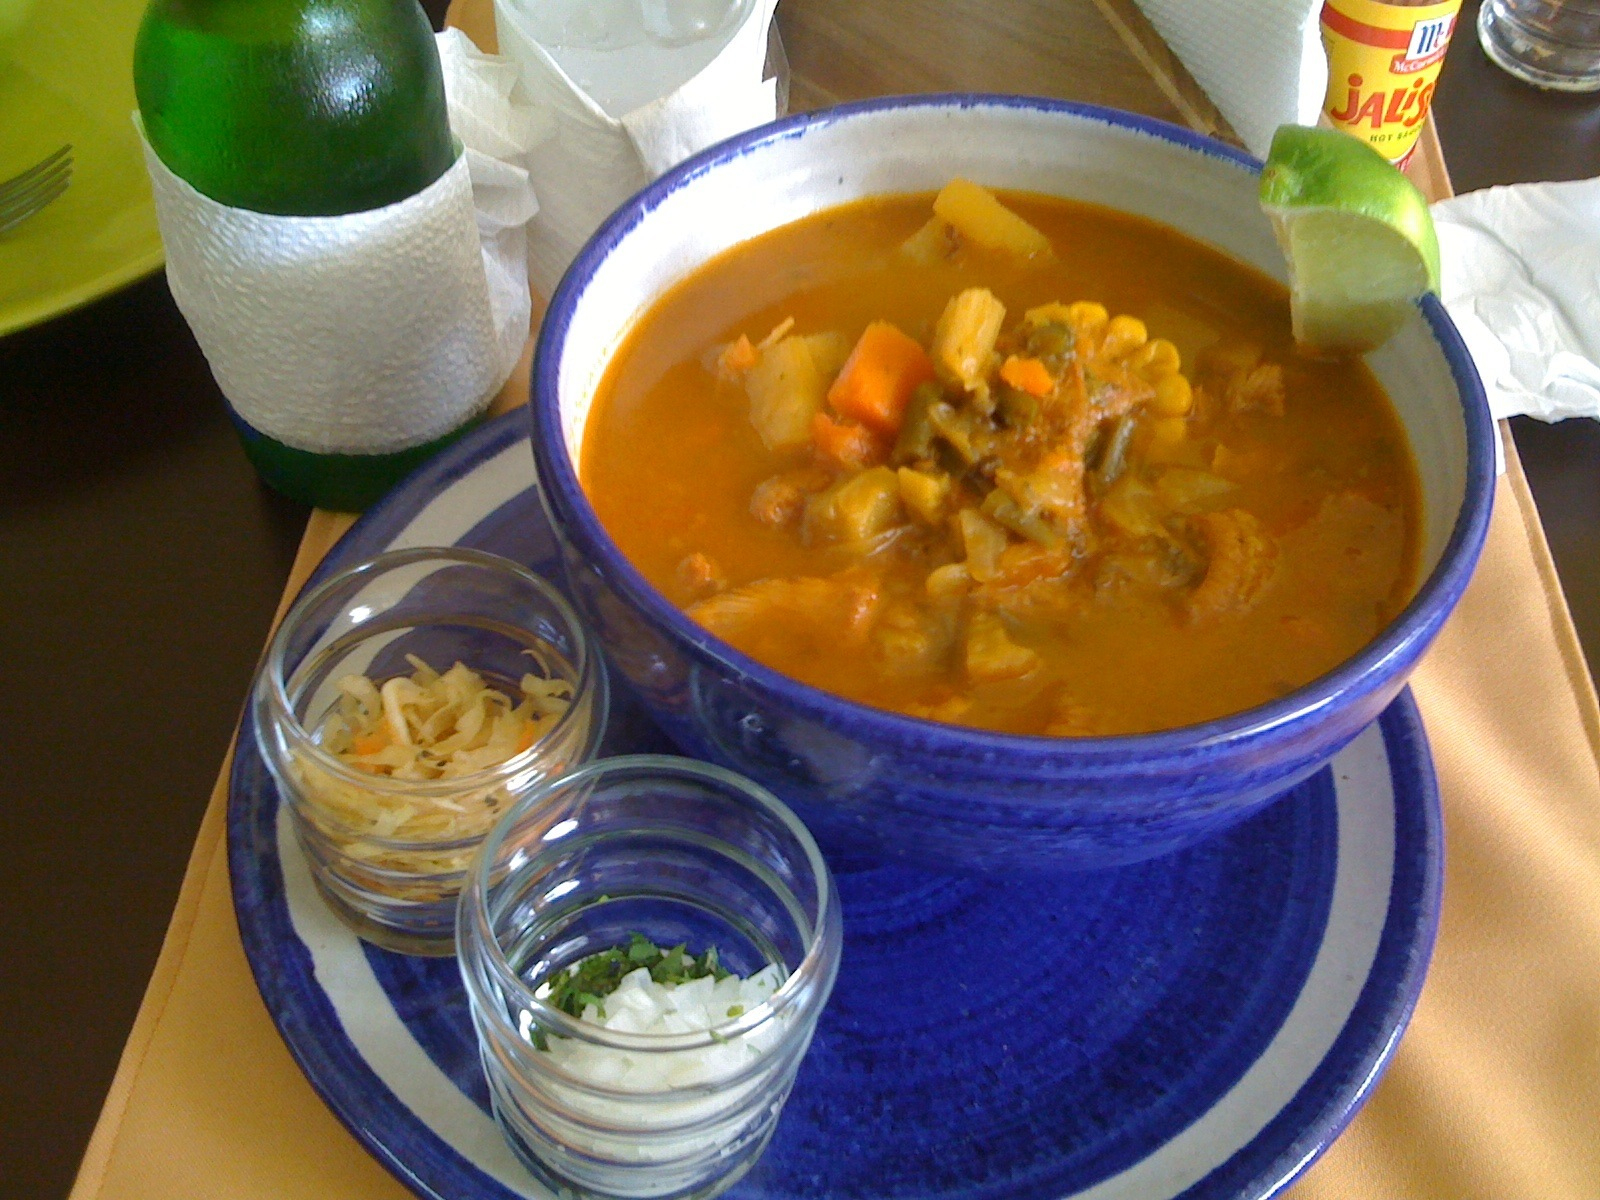 Sopa de Mondongo - photo by Roberto Rodríguez under CC BY-SA 2.0